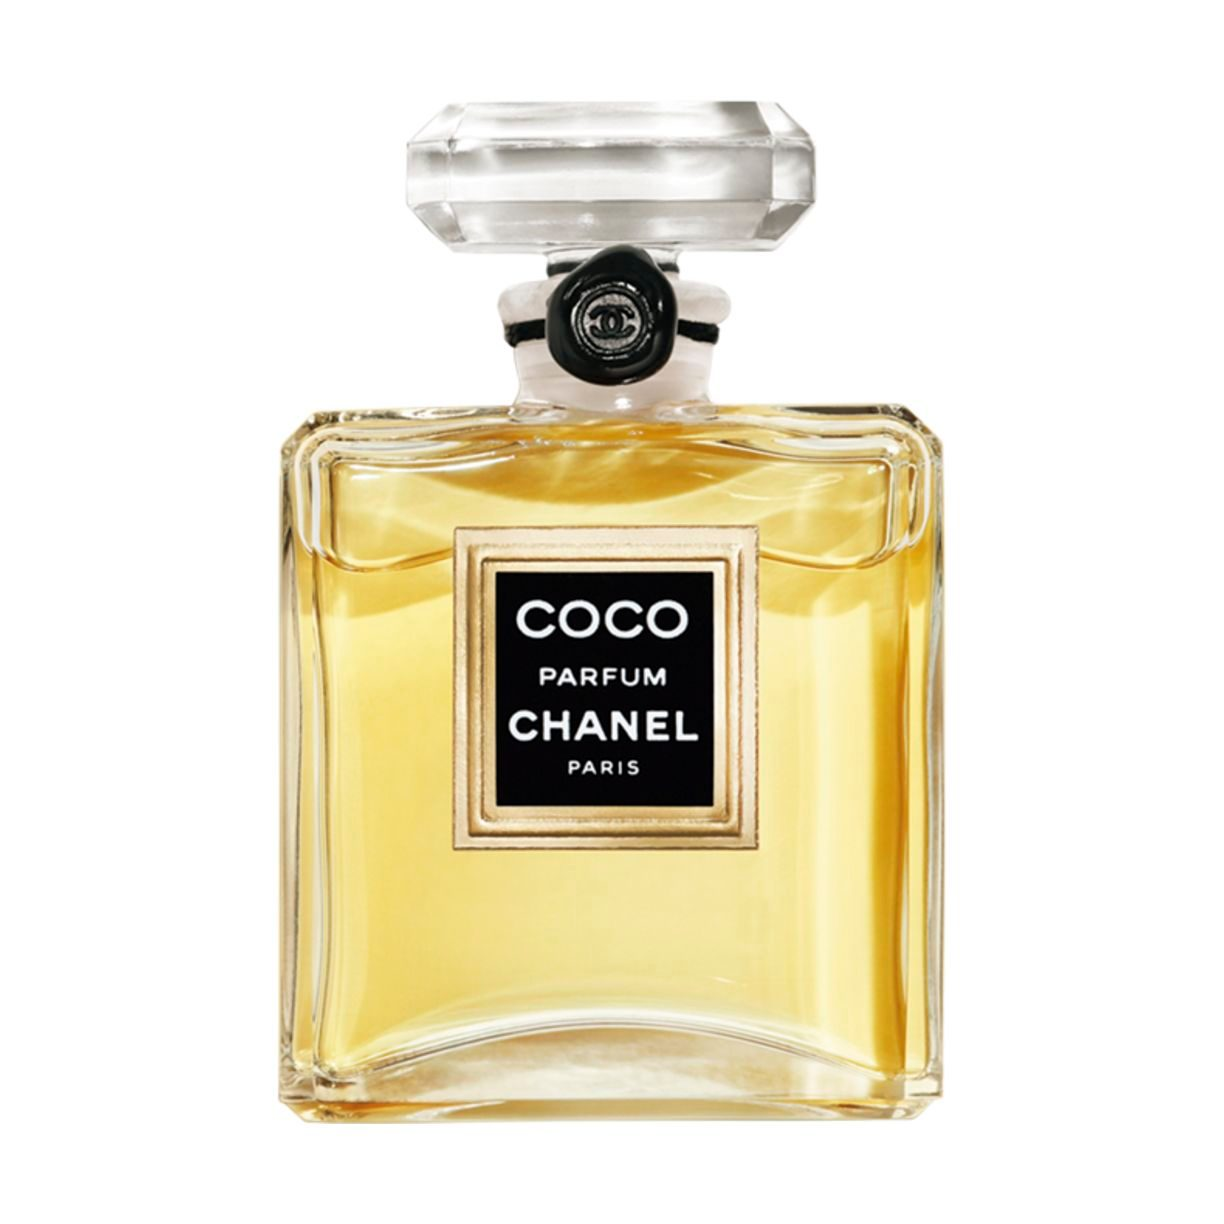 COCO PARFUM BOTTLE